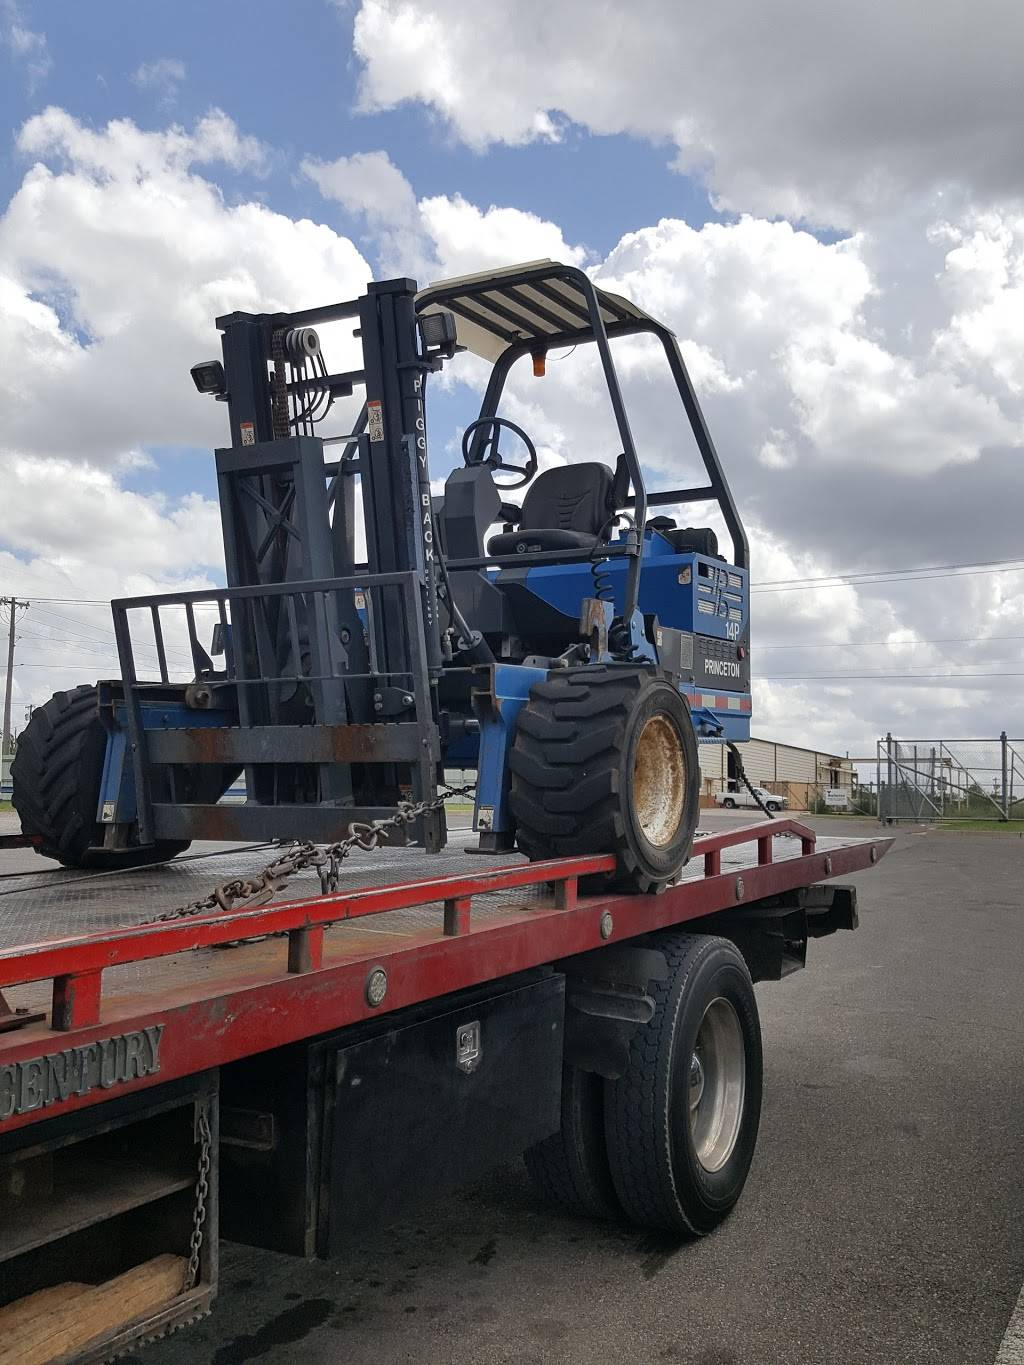 express towing and recovery - car repair  | Photo 8 of 8 | Address: 913 SE 19th St, Moore, OK 73160, USA | Phone: (405) 799-1191